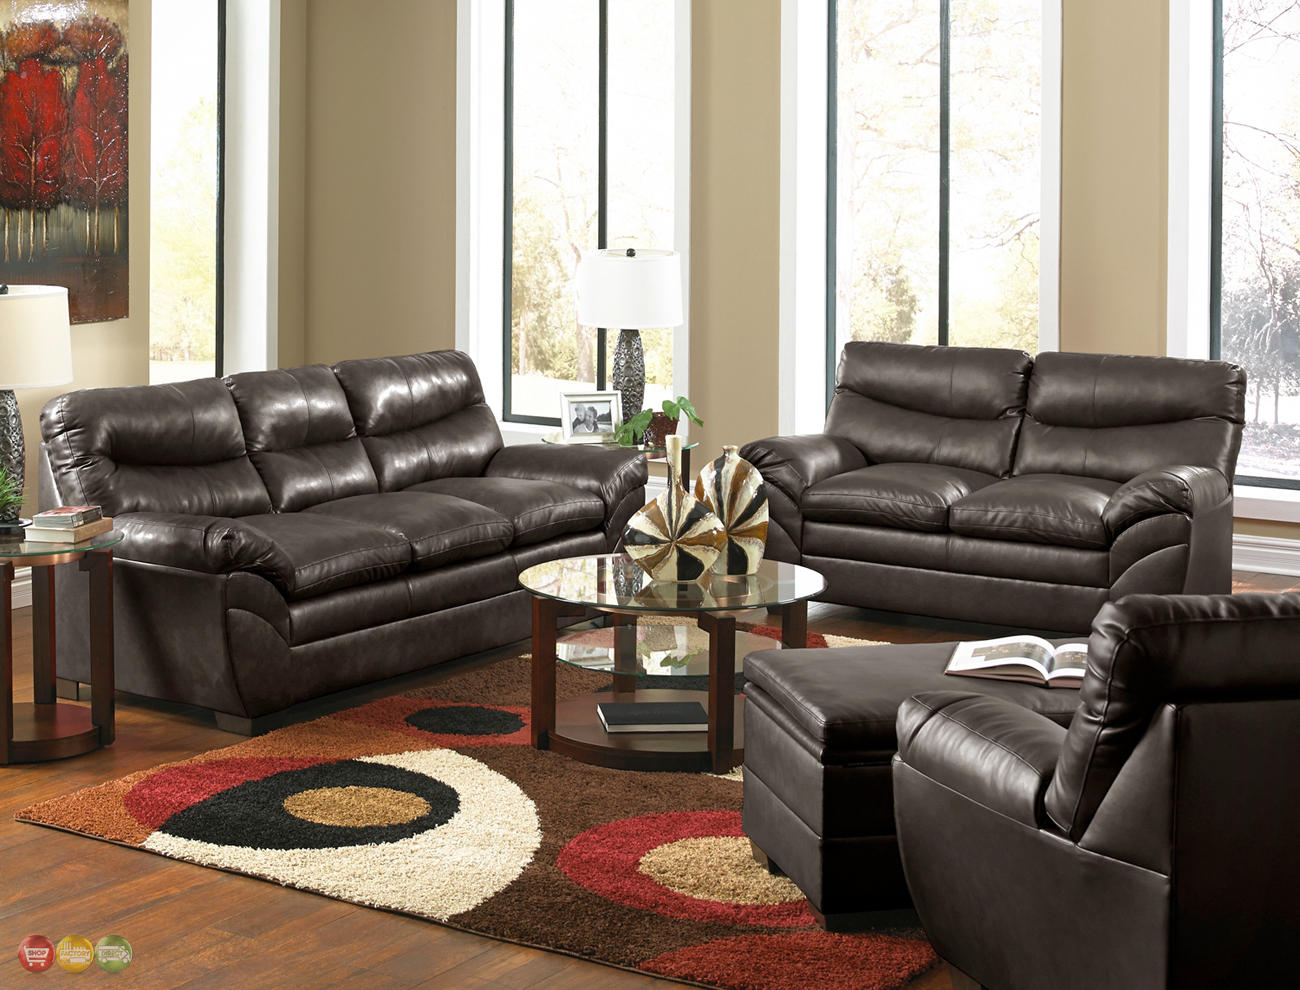 Contemporary Brown Bonded Leather Sofa Set Living Room Furniture